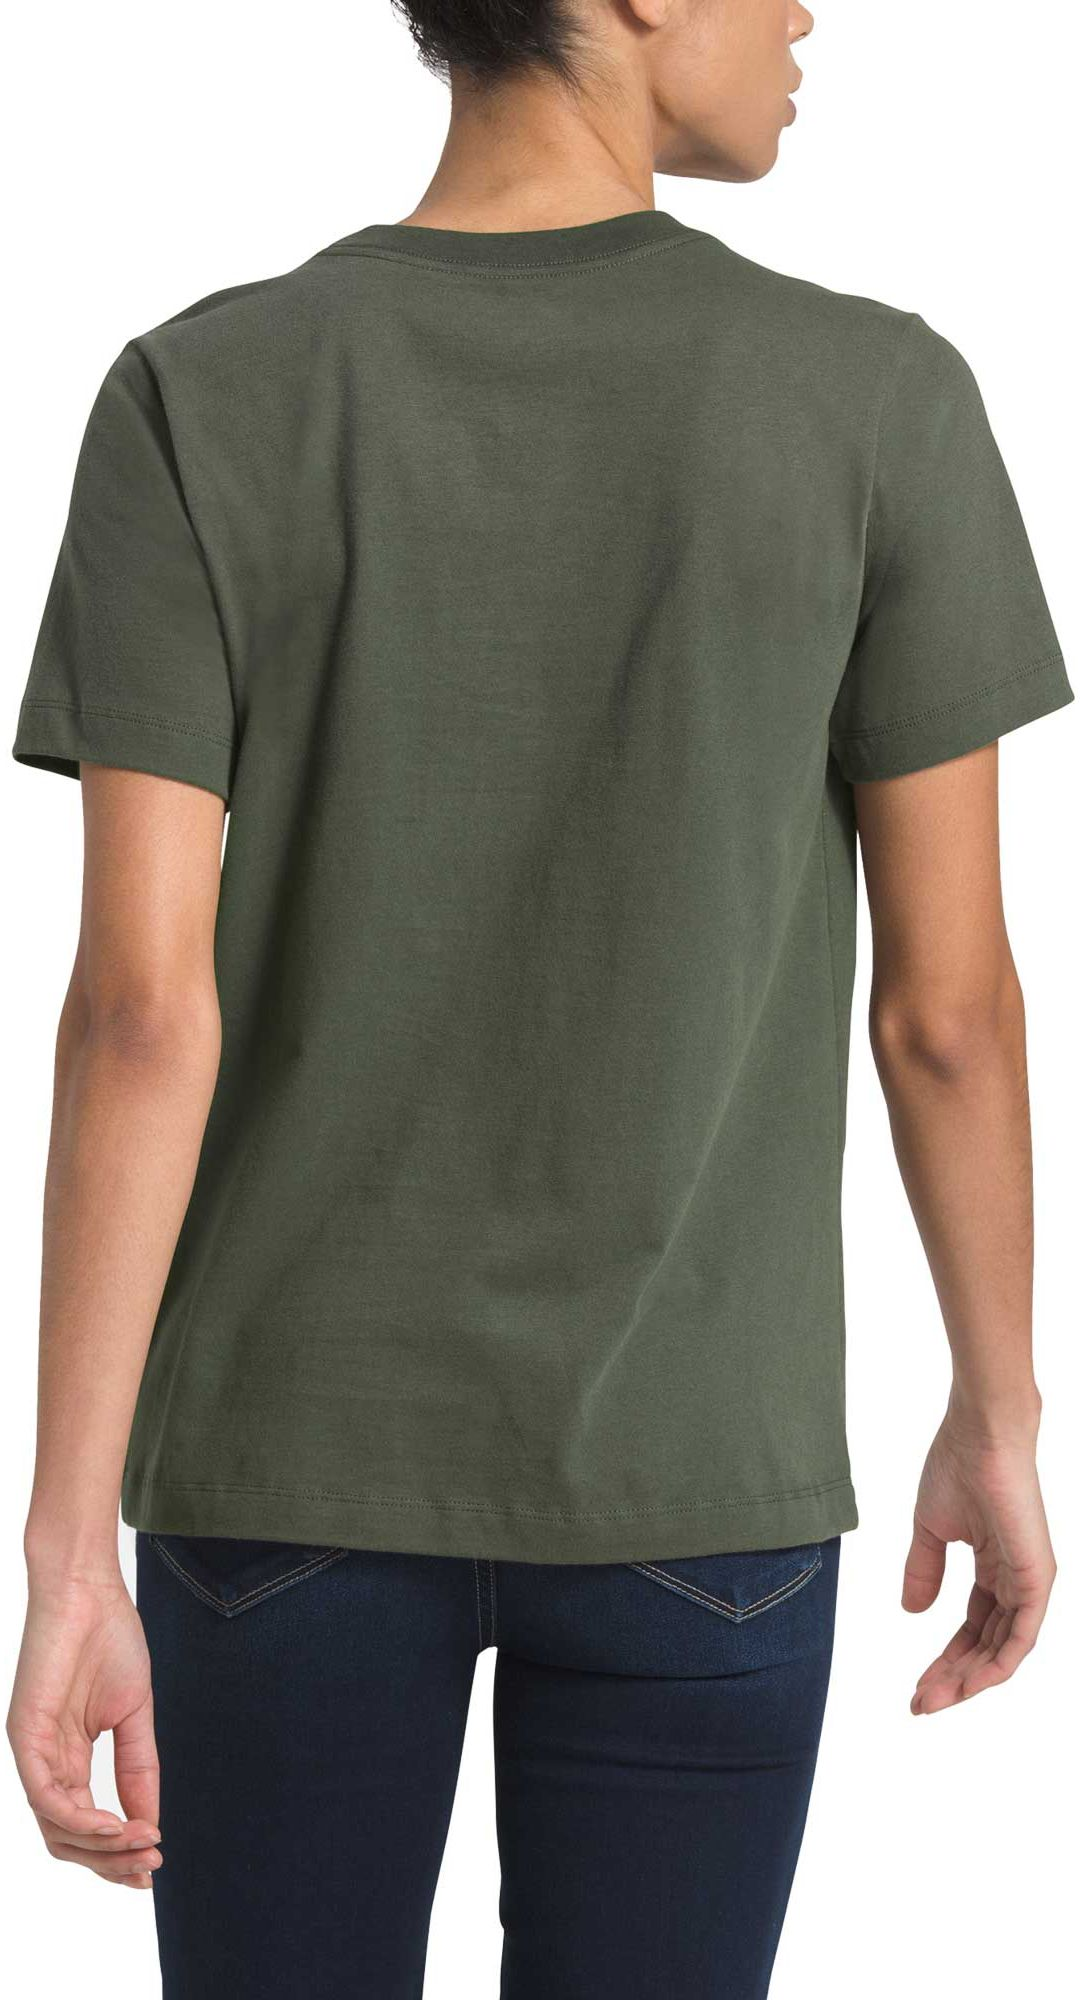 b19732585 The North Face Women's Half Dome Short Sleeve T-Shirt